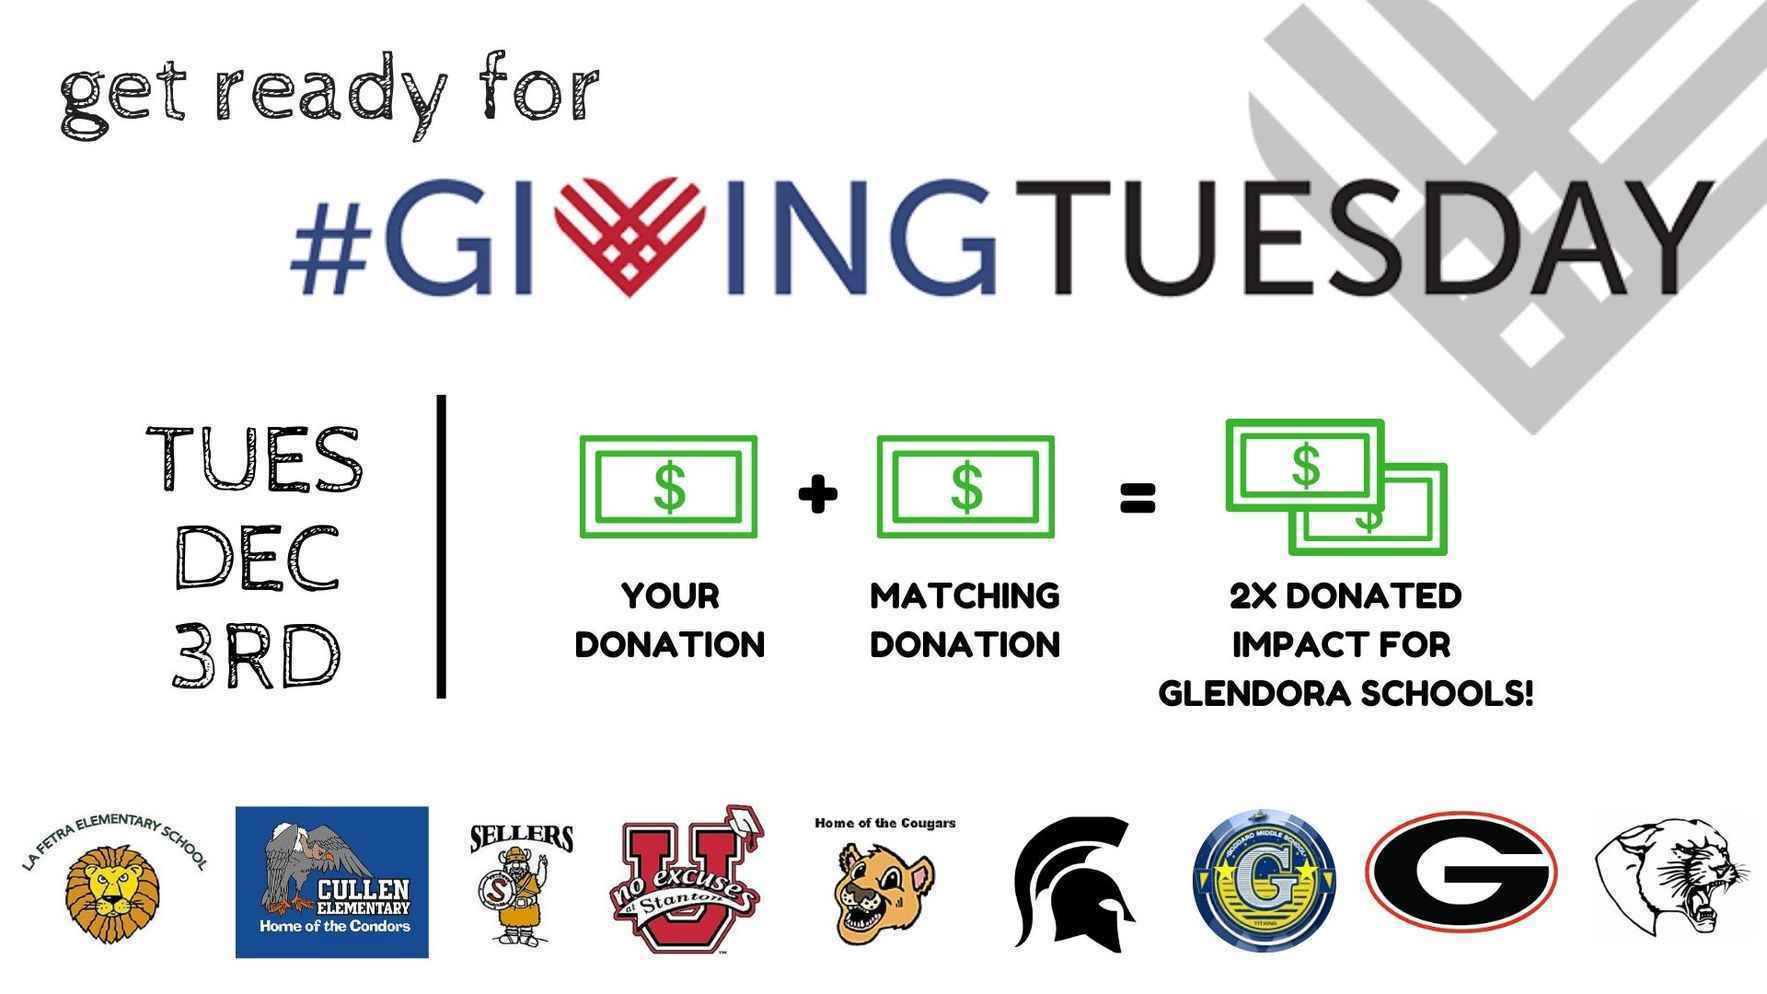 Give to Glendora schools on #GivingTuesday and DOUBLE your impact! image